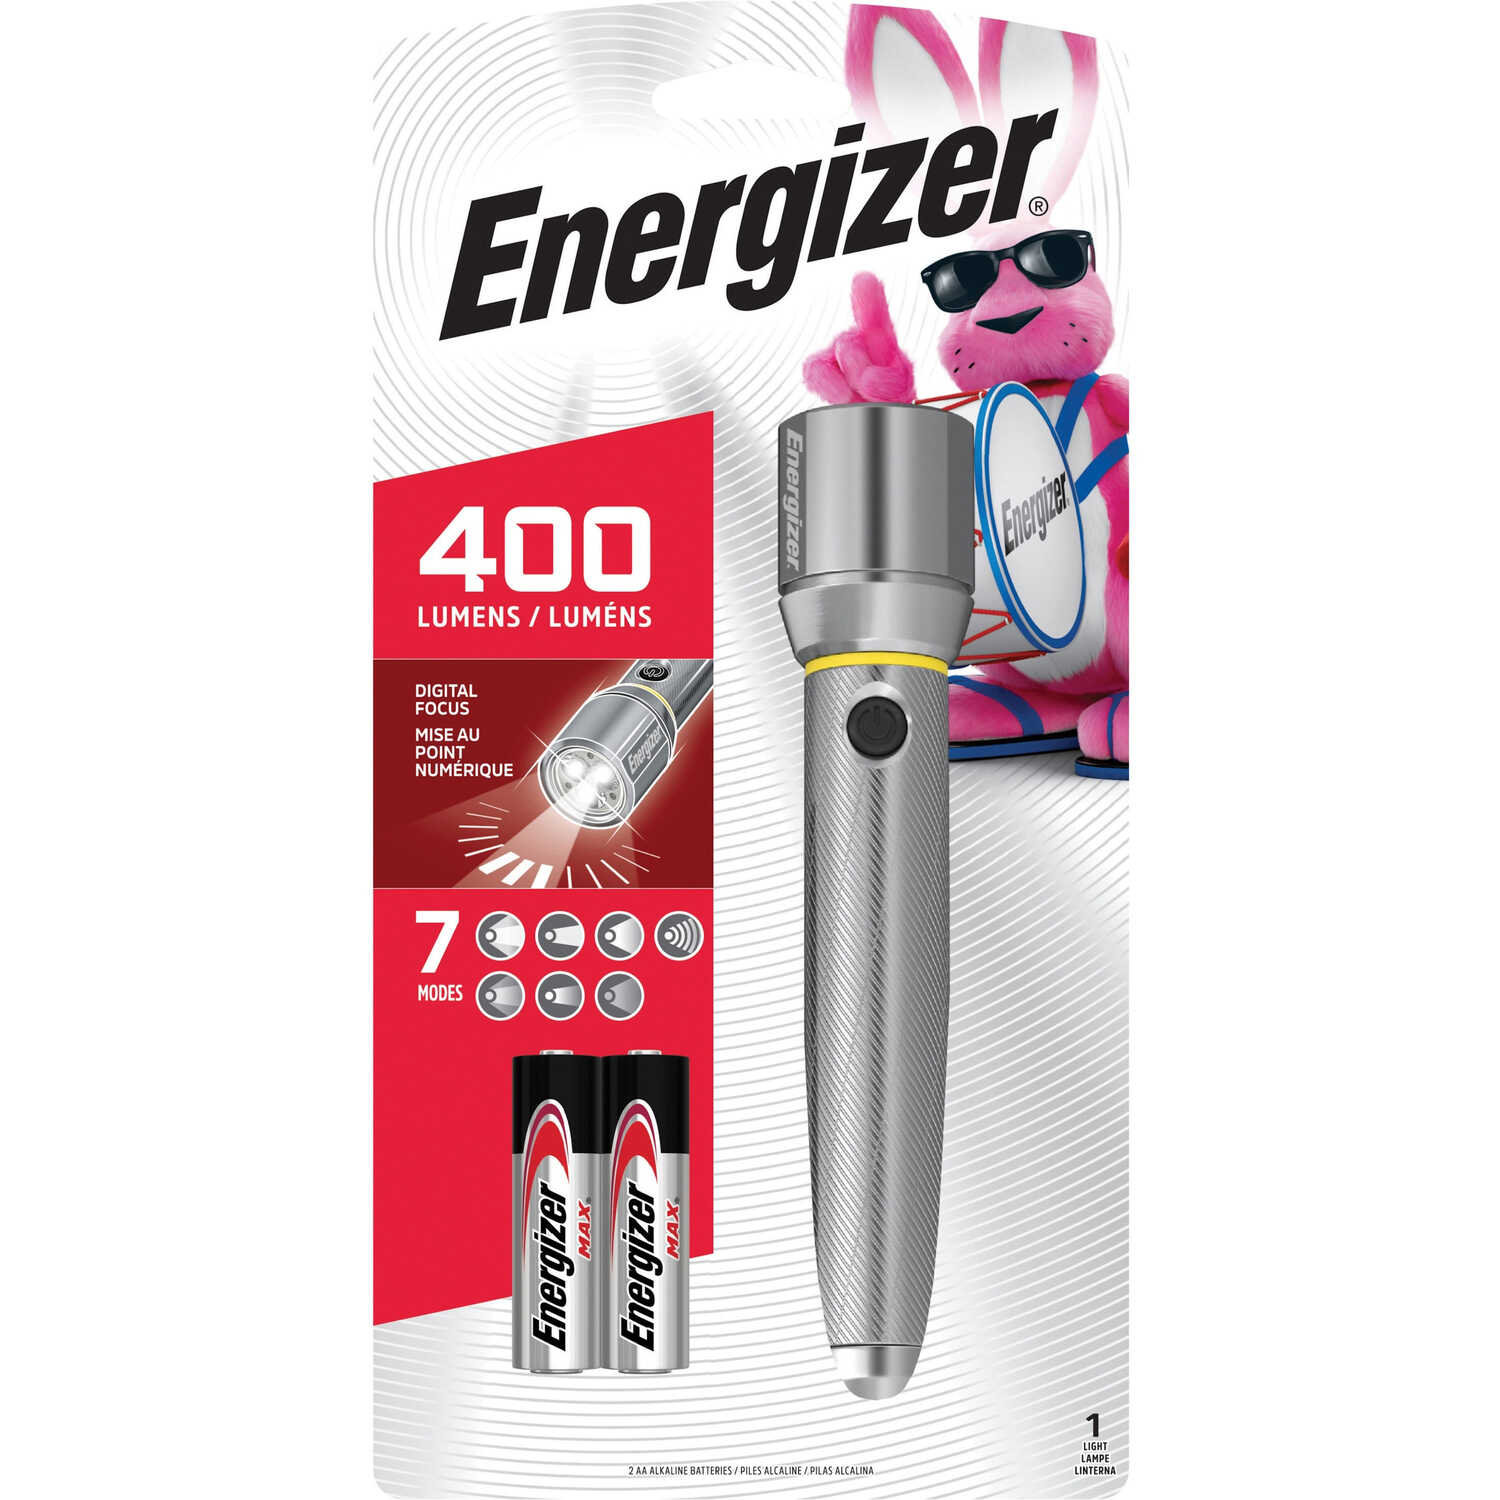 Energizer  400 lumens Black  LED  AA  Flashlight  Black